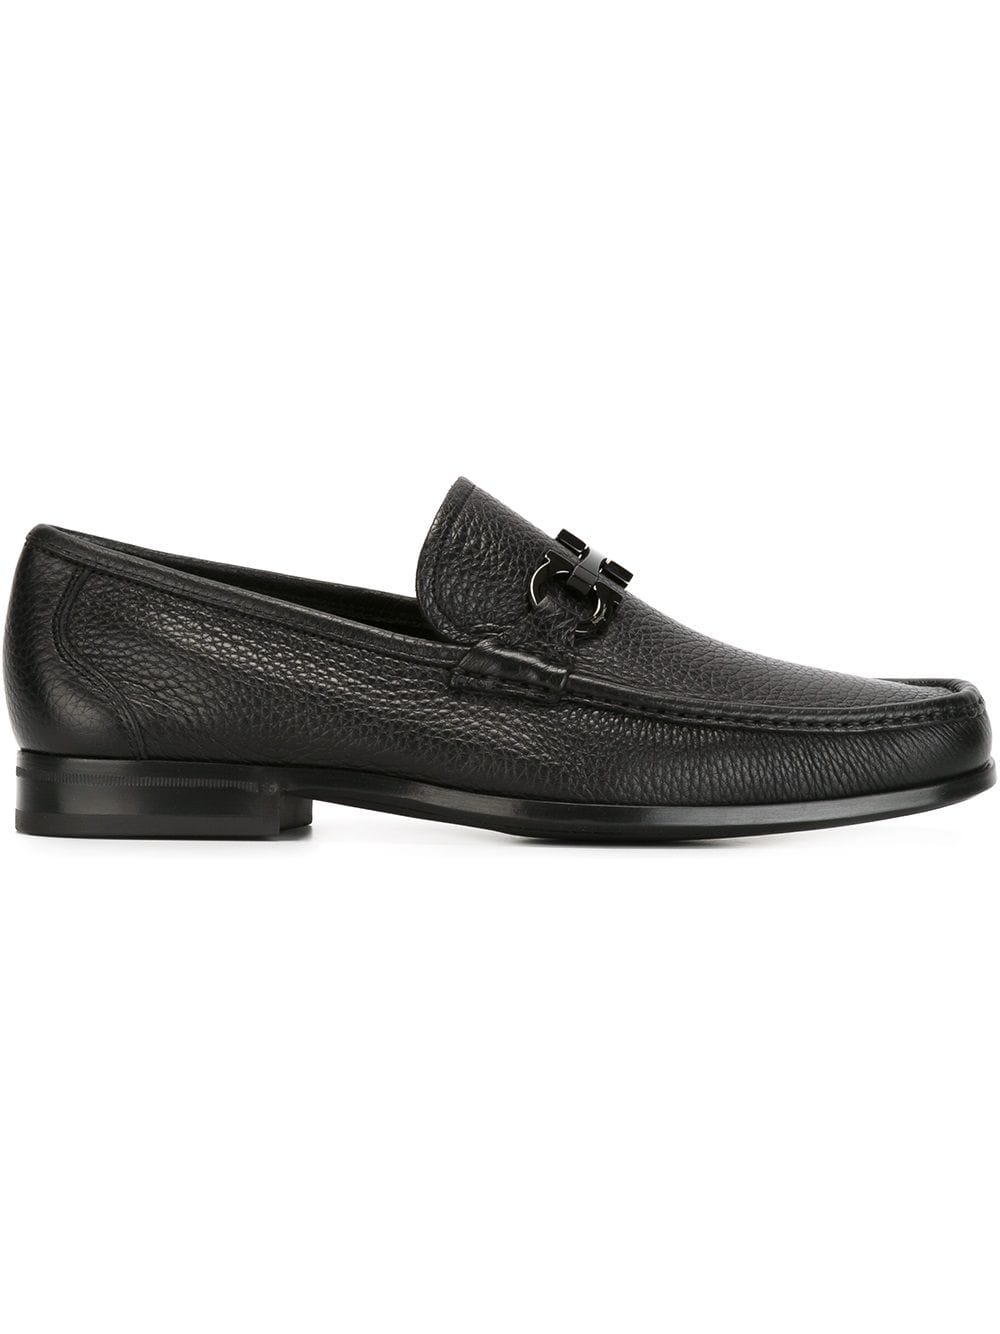 Grandioso Leather Loafer